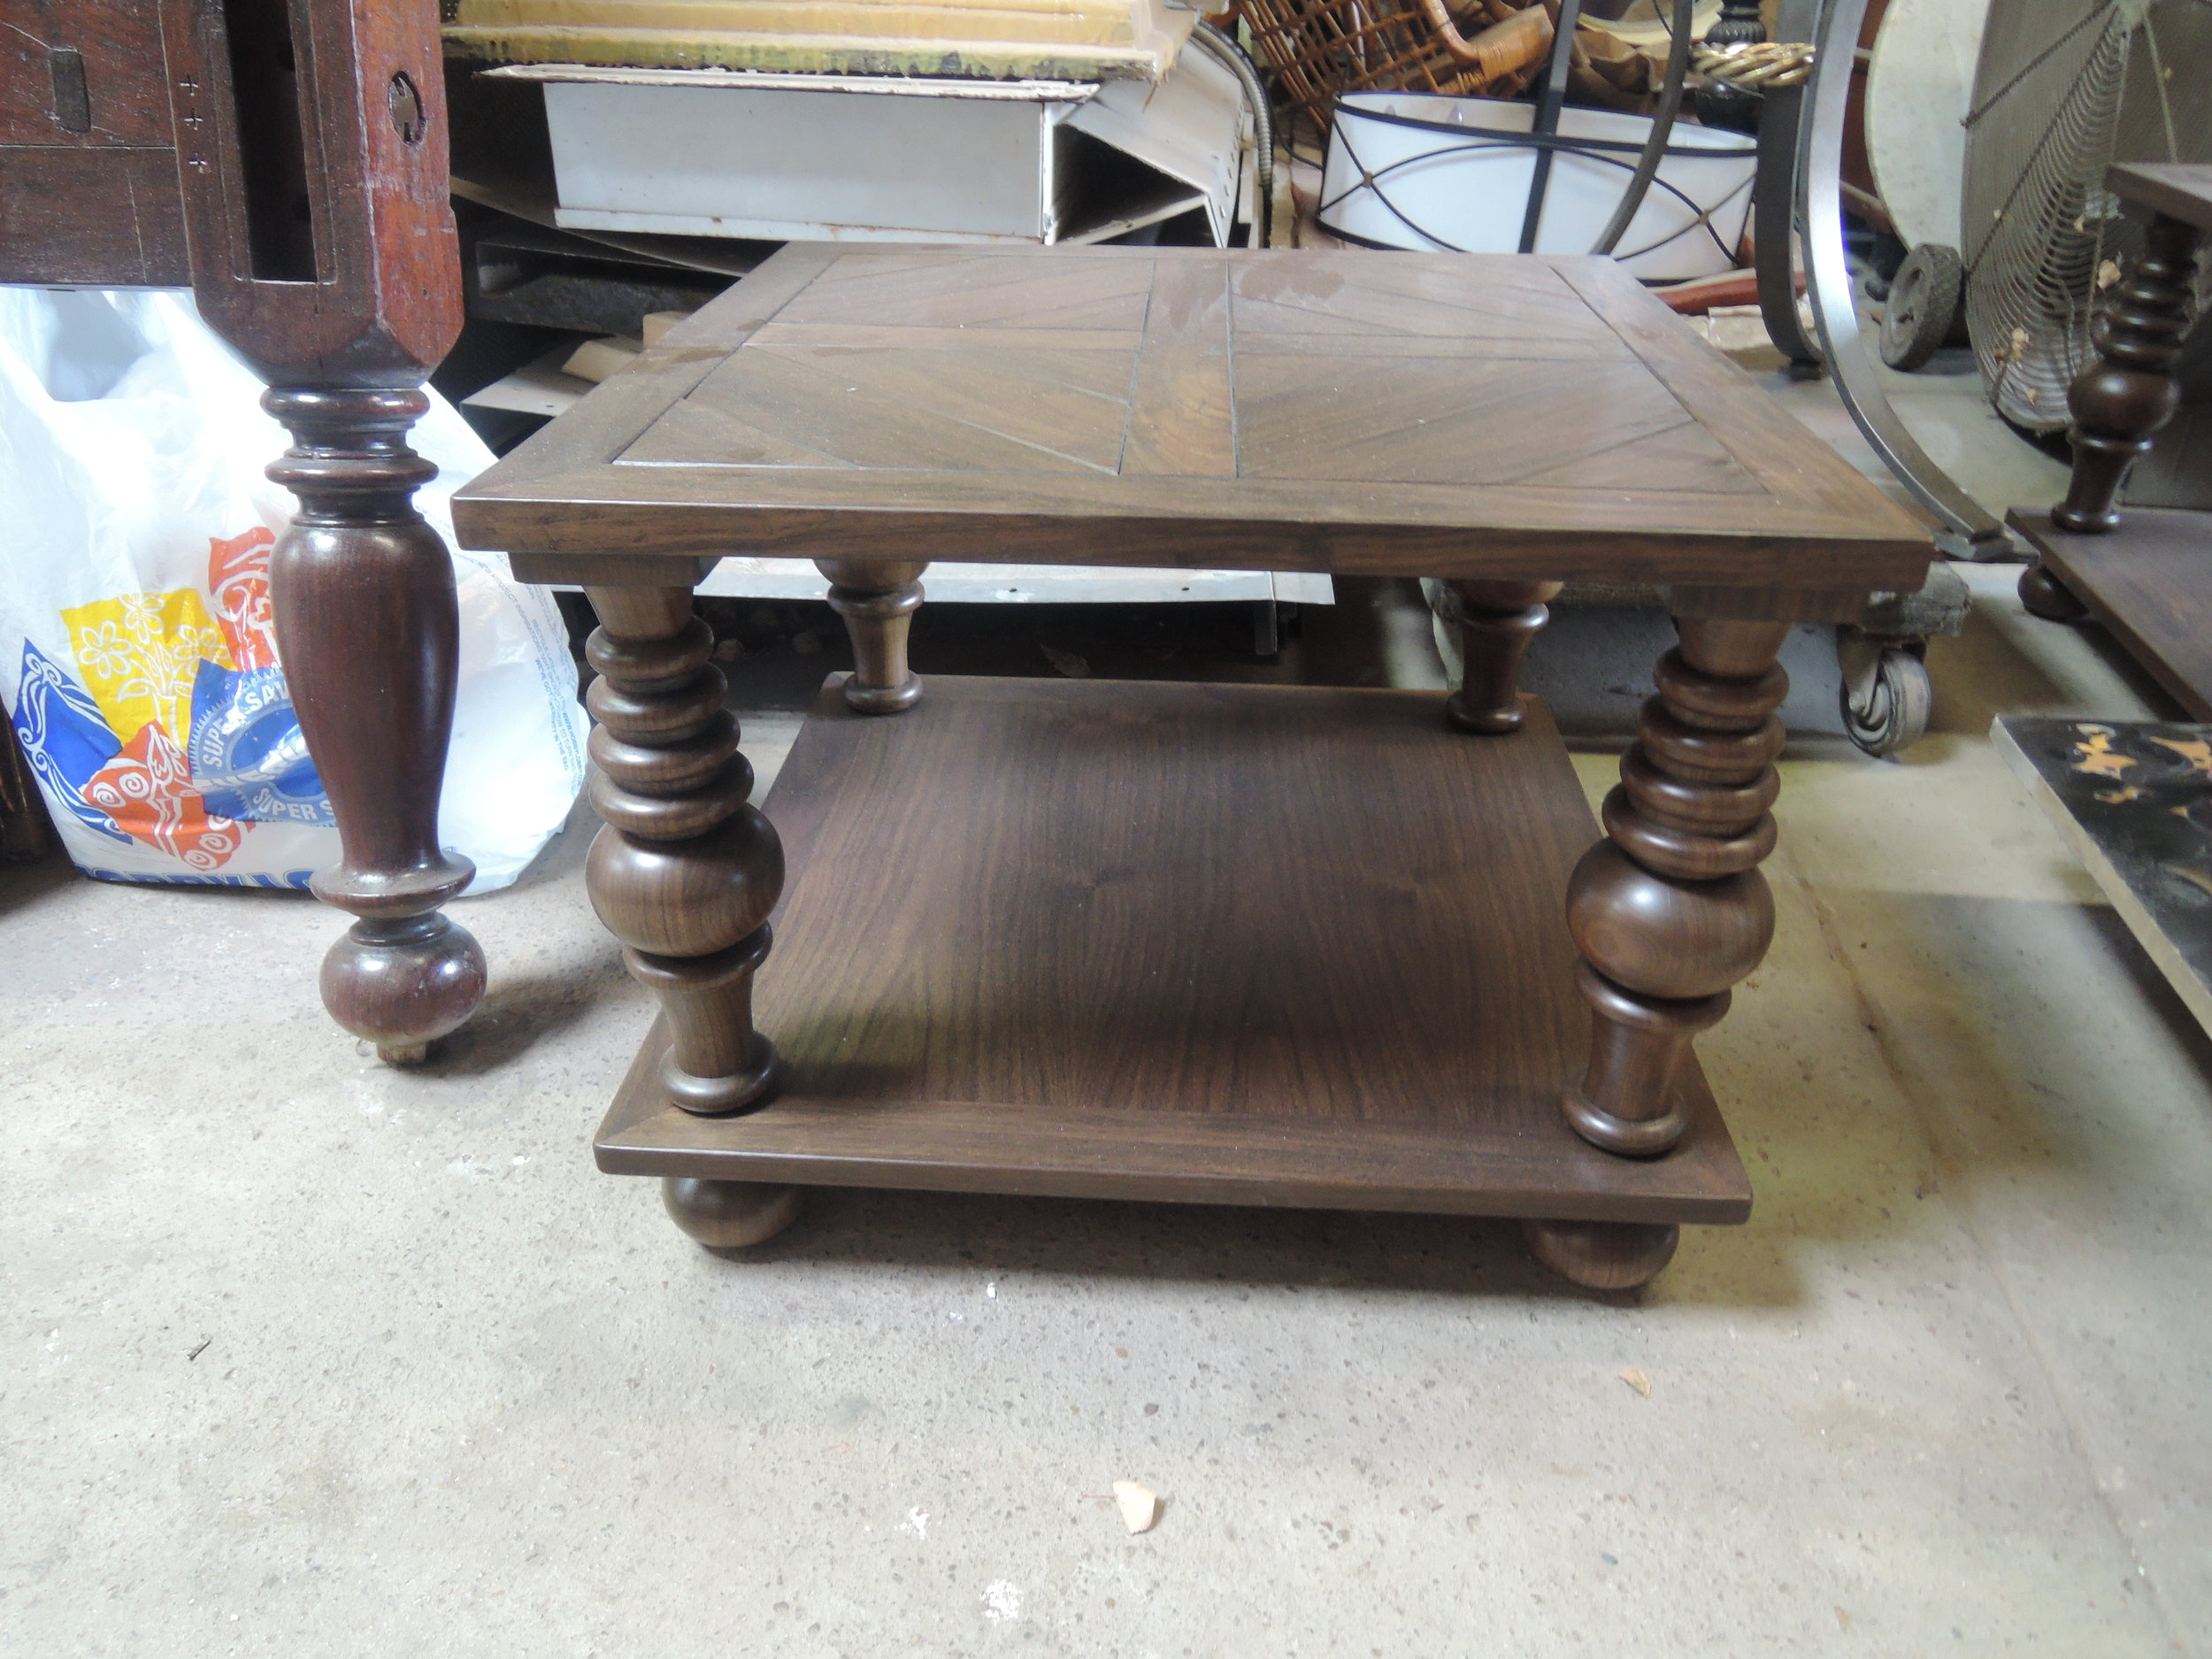 Rosselli NY - Sanders PR Custom Tables 1.JPG